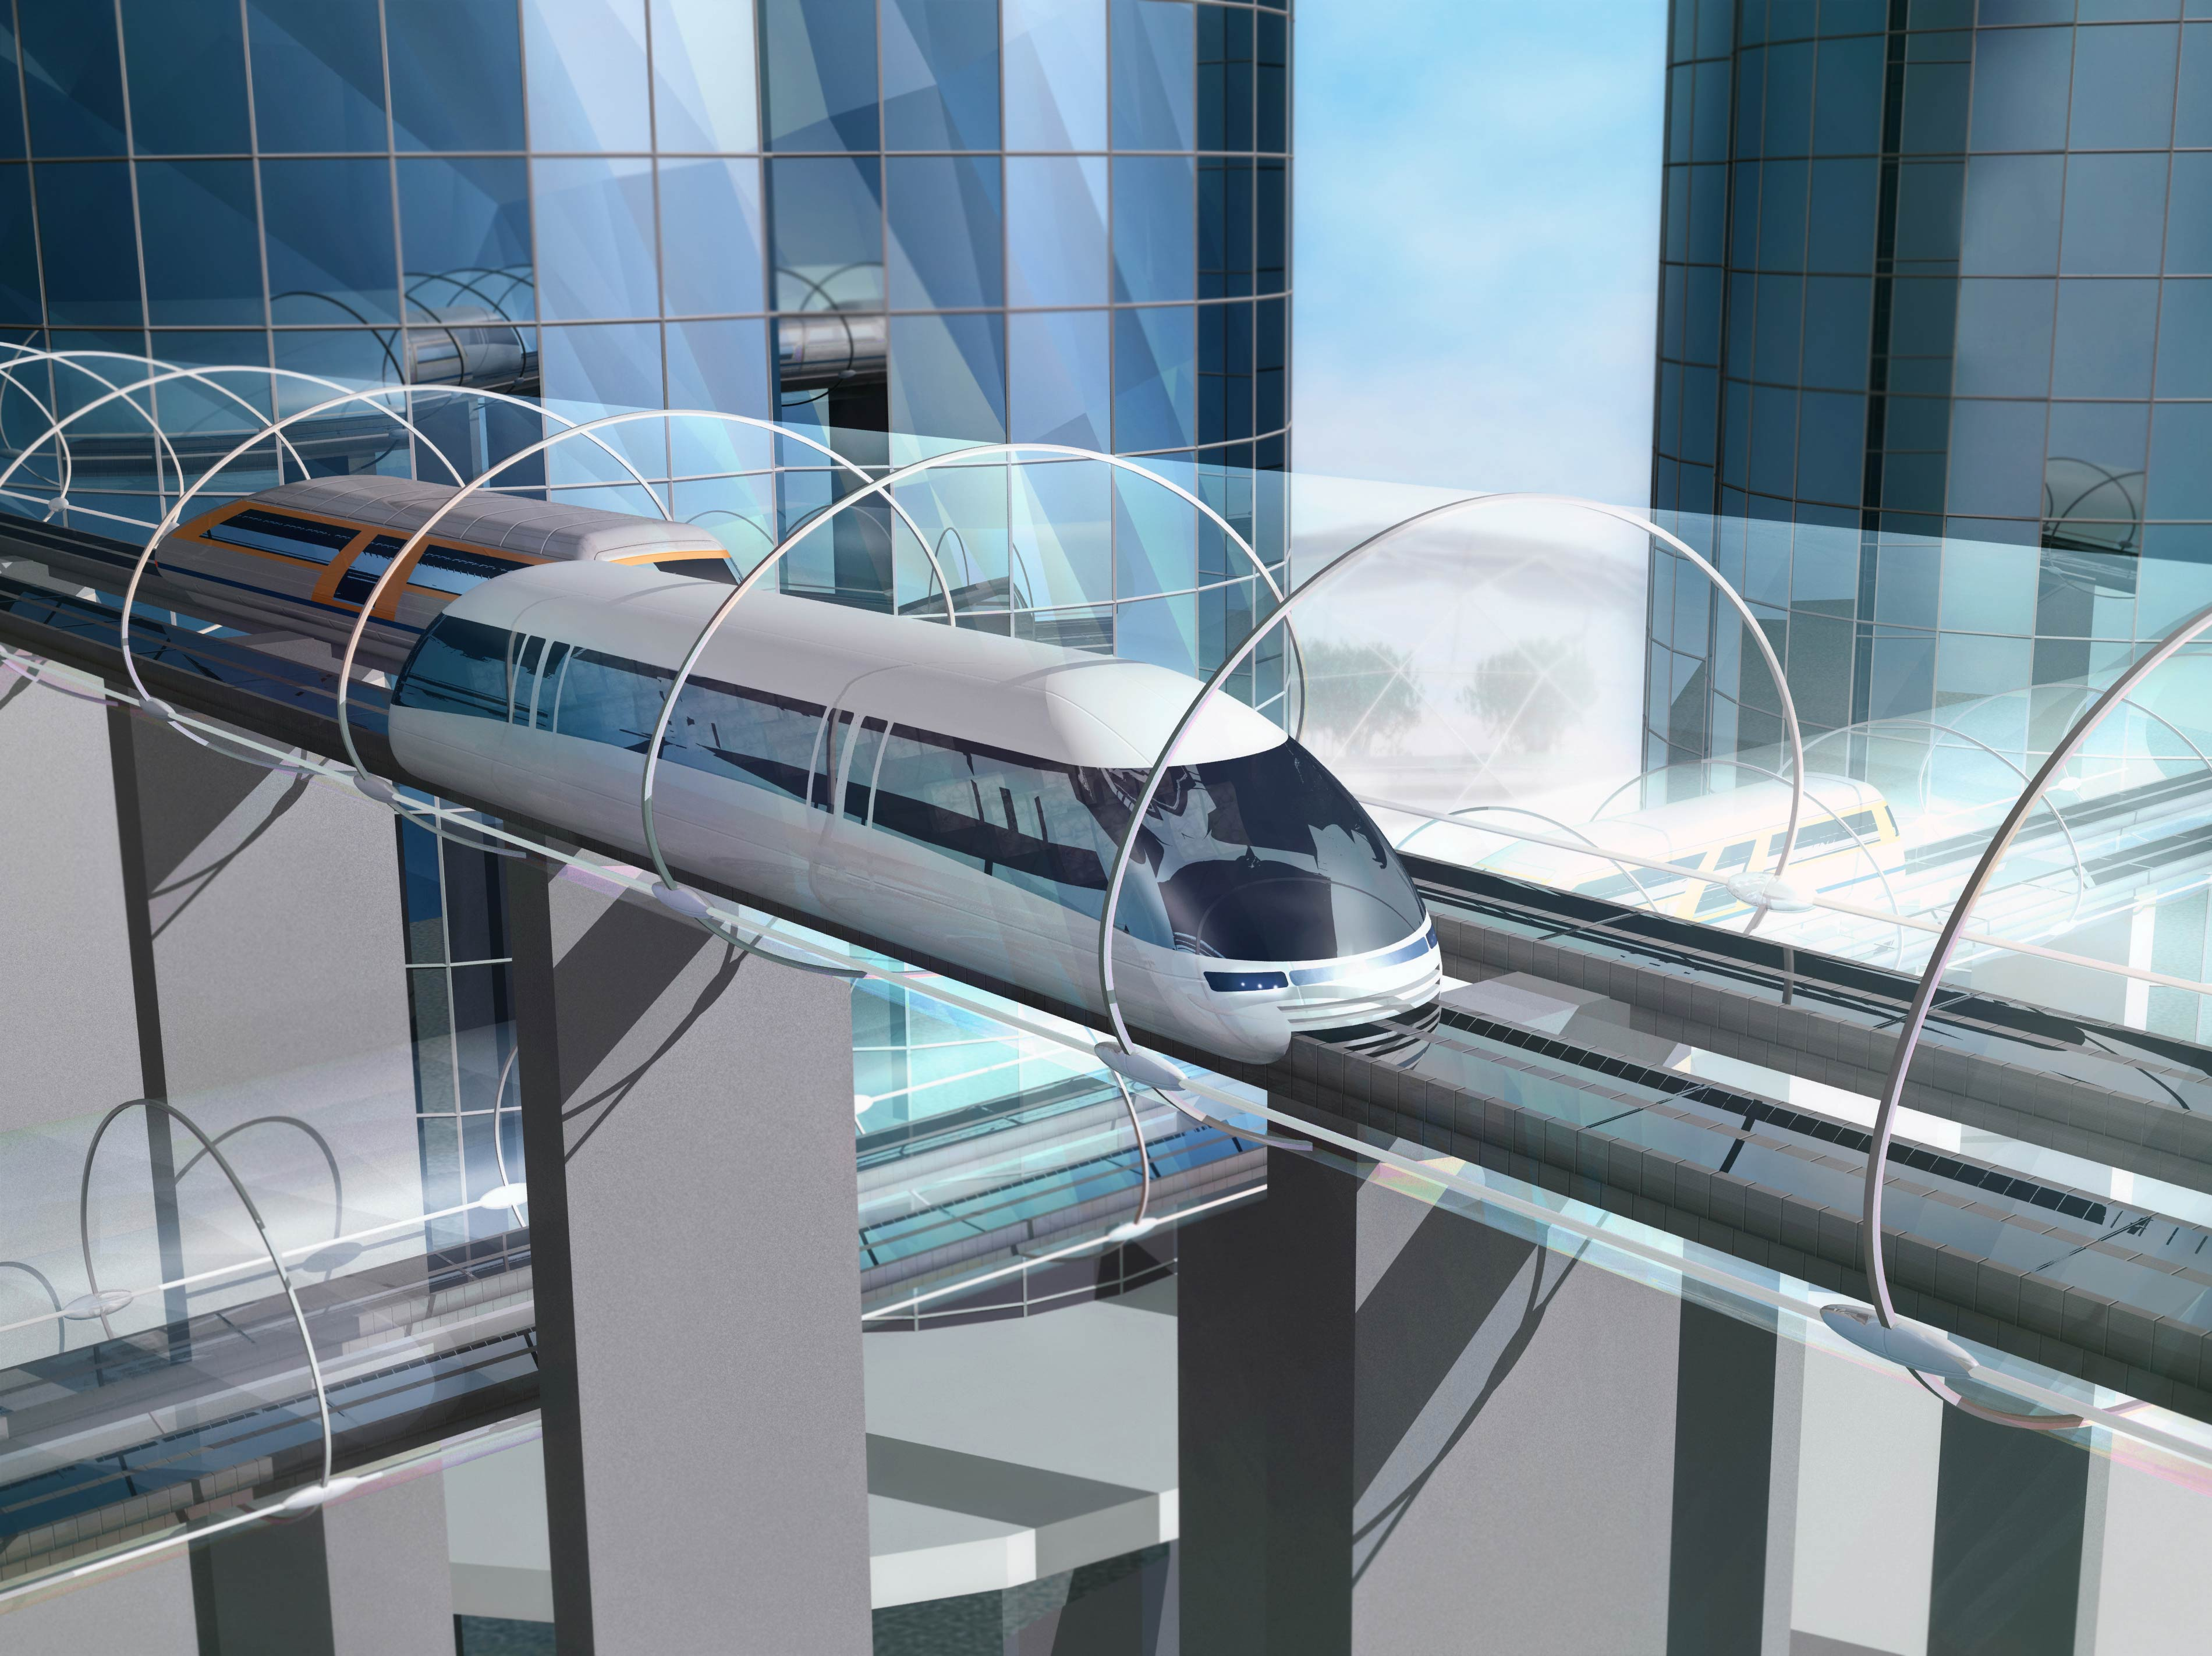 China signs a deal to begin development of supersonic trains